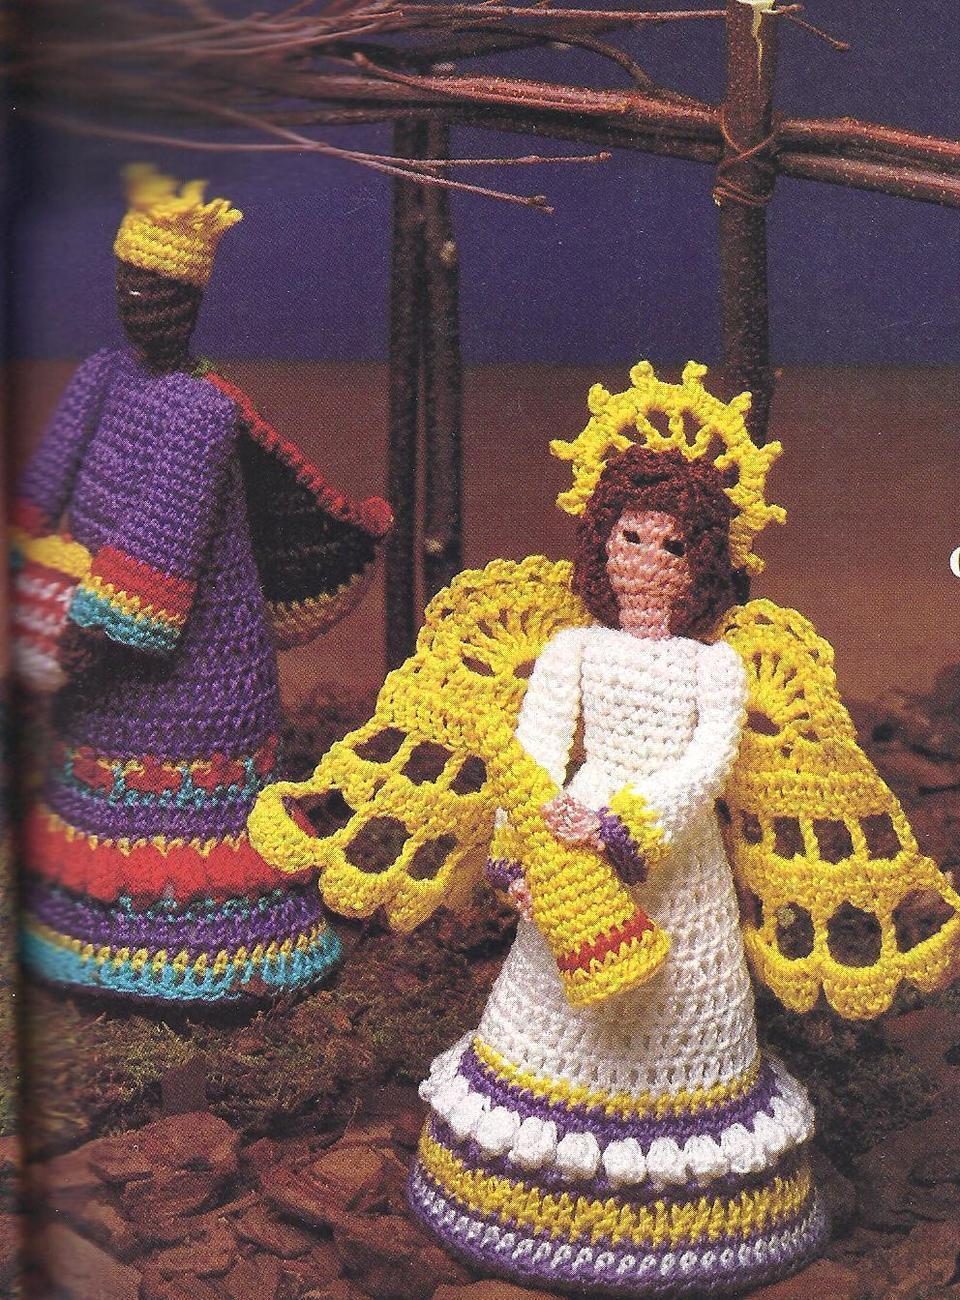 Free Crochet Patterns Nativity Scene : NATIVITY CROCHET PATTERN ? Crochet For Beginners